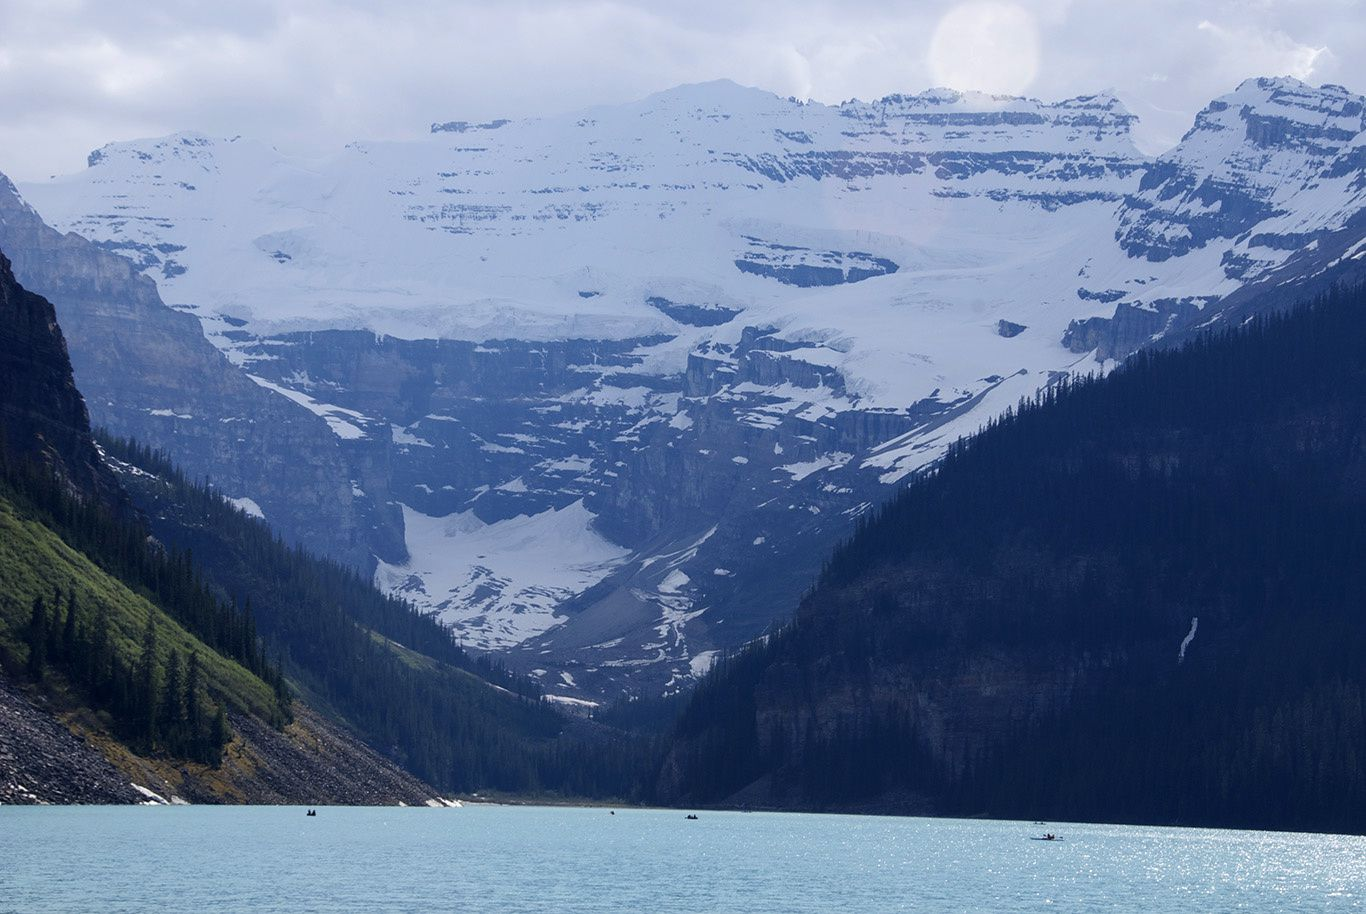 Lake Louise in Banff National Park: one of the most beautiful place in the Rockies with an impressive view on Victoria Glacier in the back